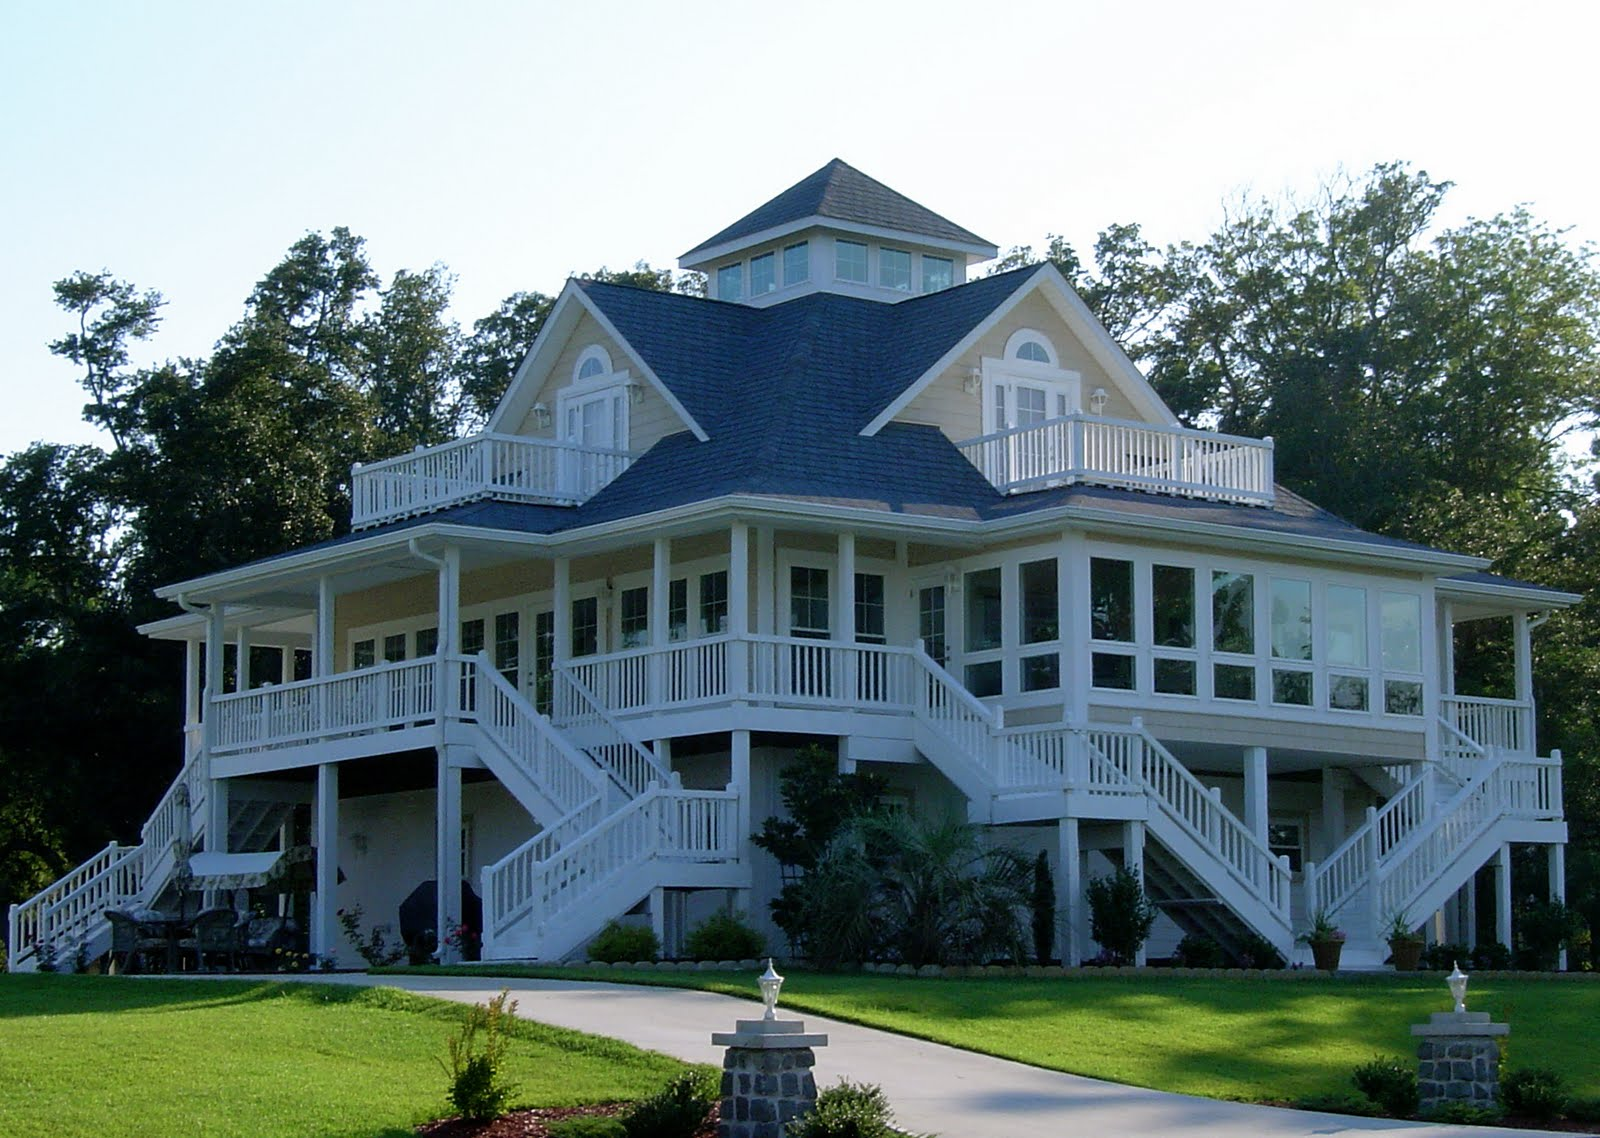 Cottage Plans White Balcony Fence White Stairs Dark Blue Rooof